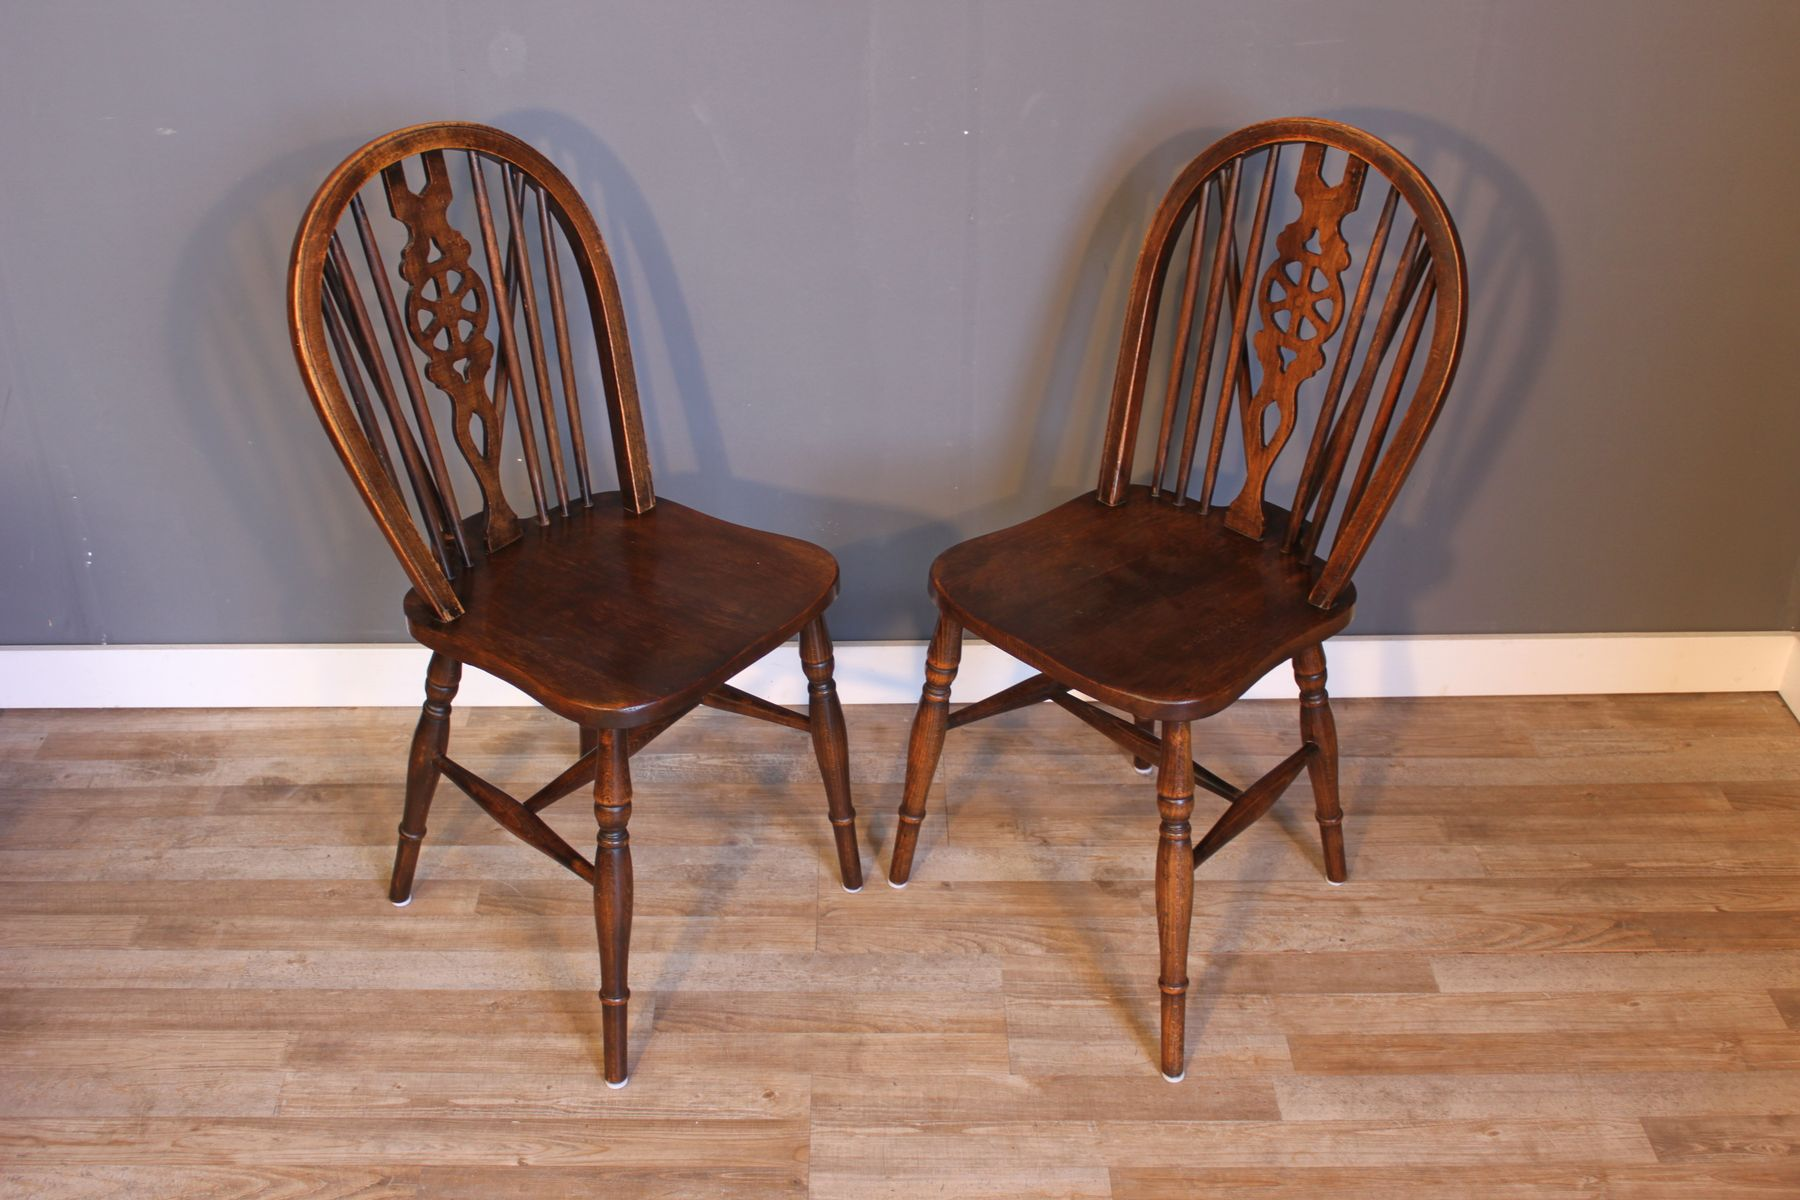 19th Century Wooden Windsor Chairs Set of 2 for sale at Pamono